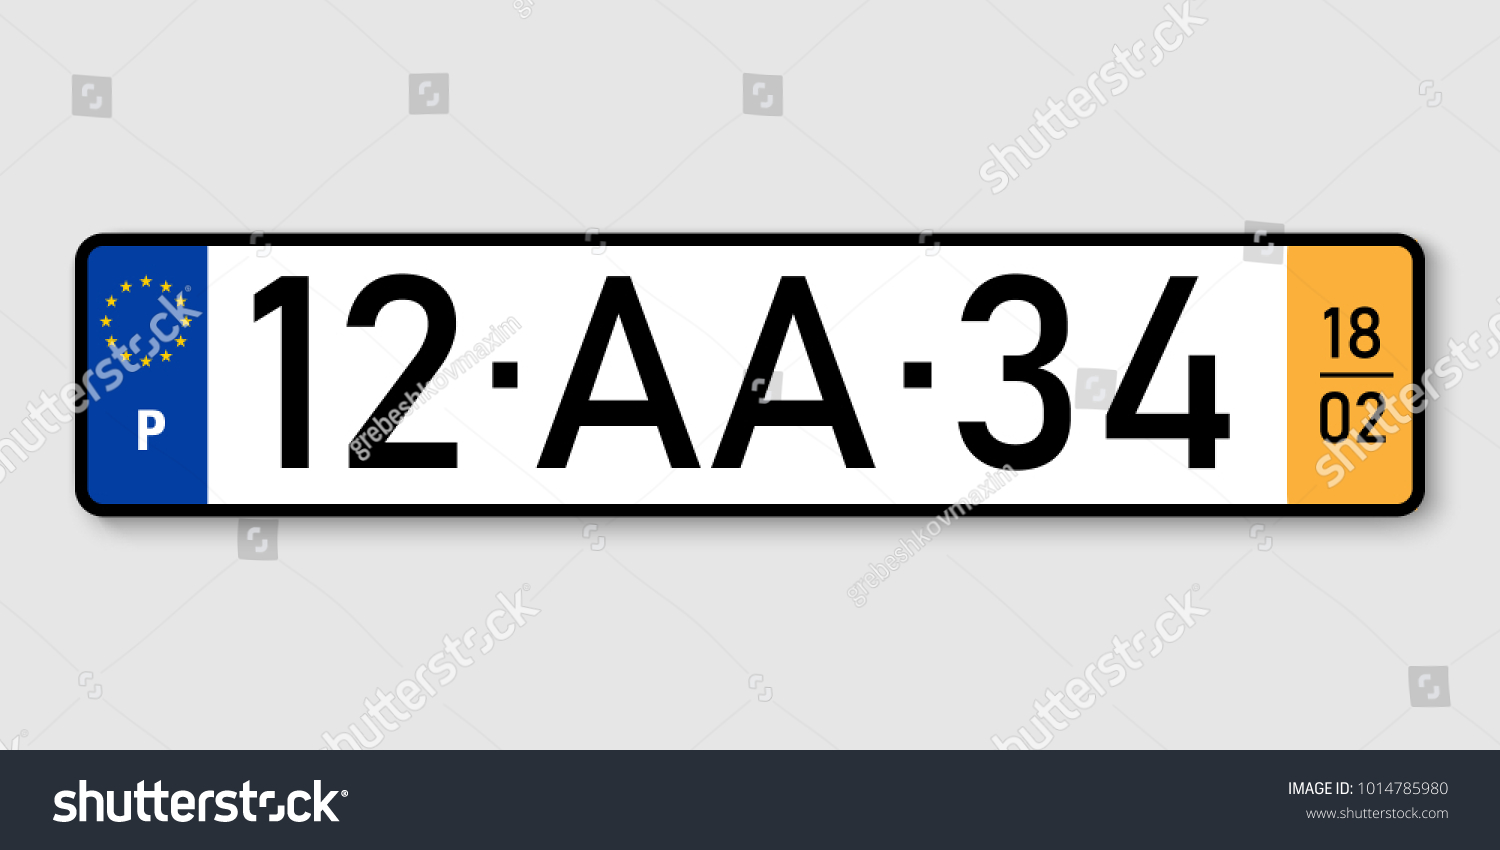 Number Plate Vehicle Registration Plates Portugal Stock Vector ...